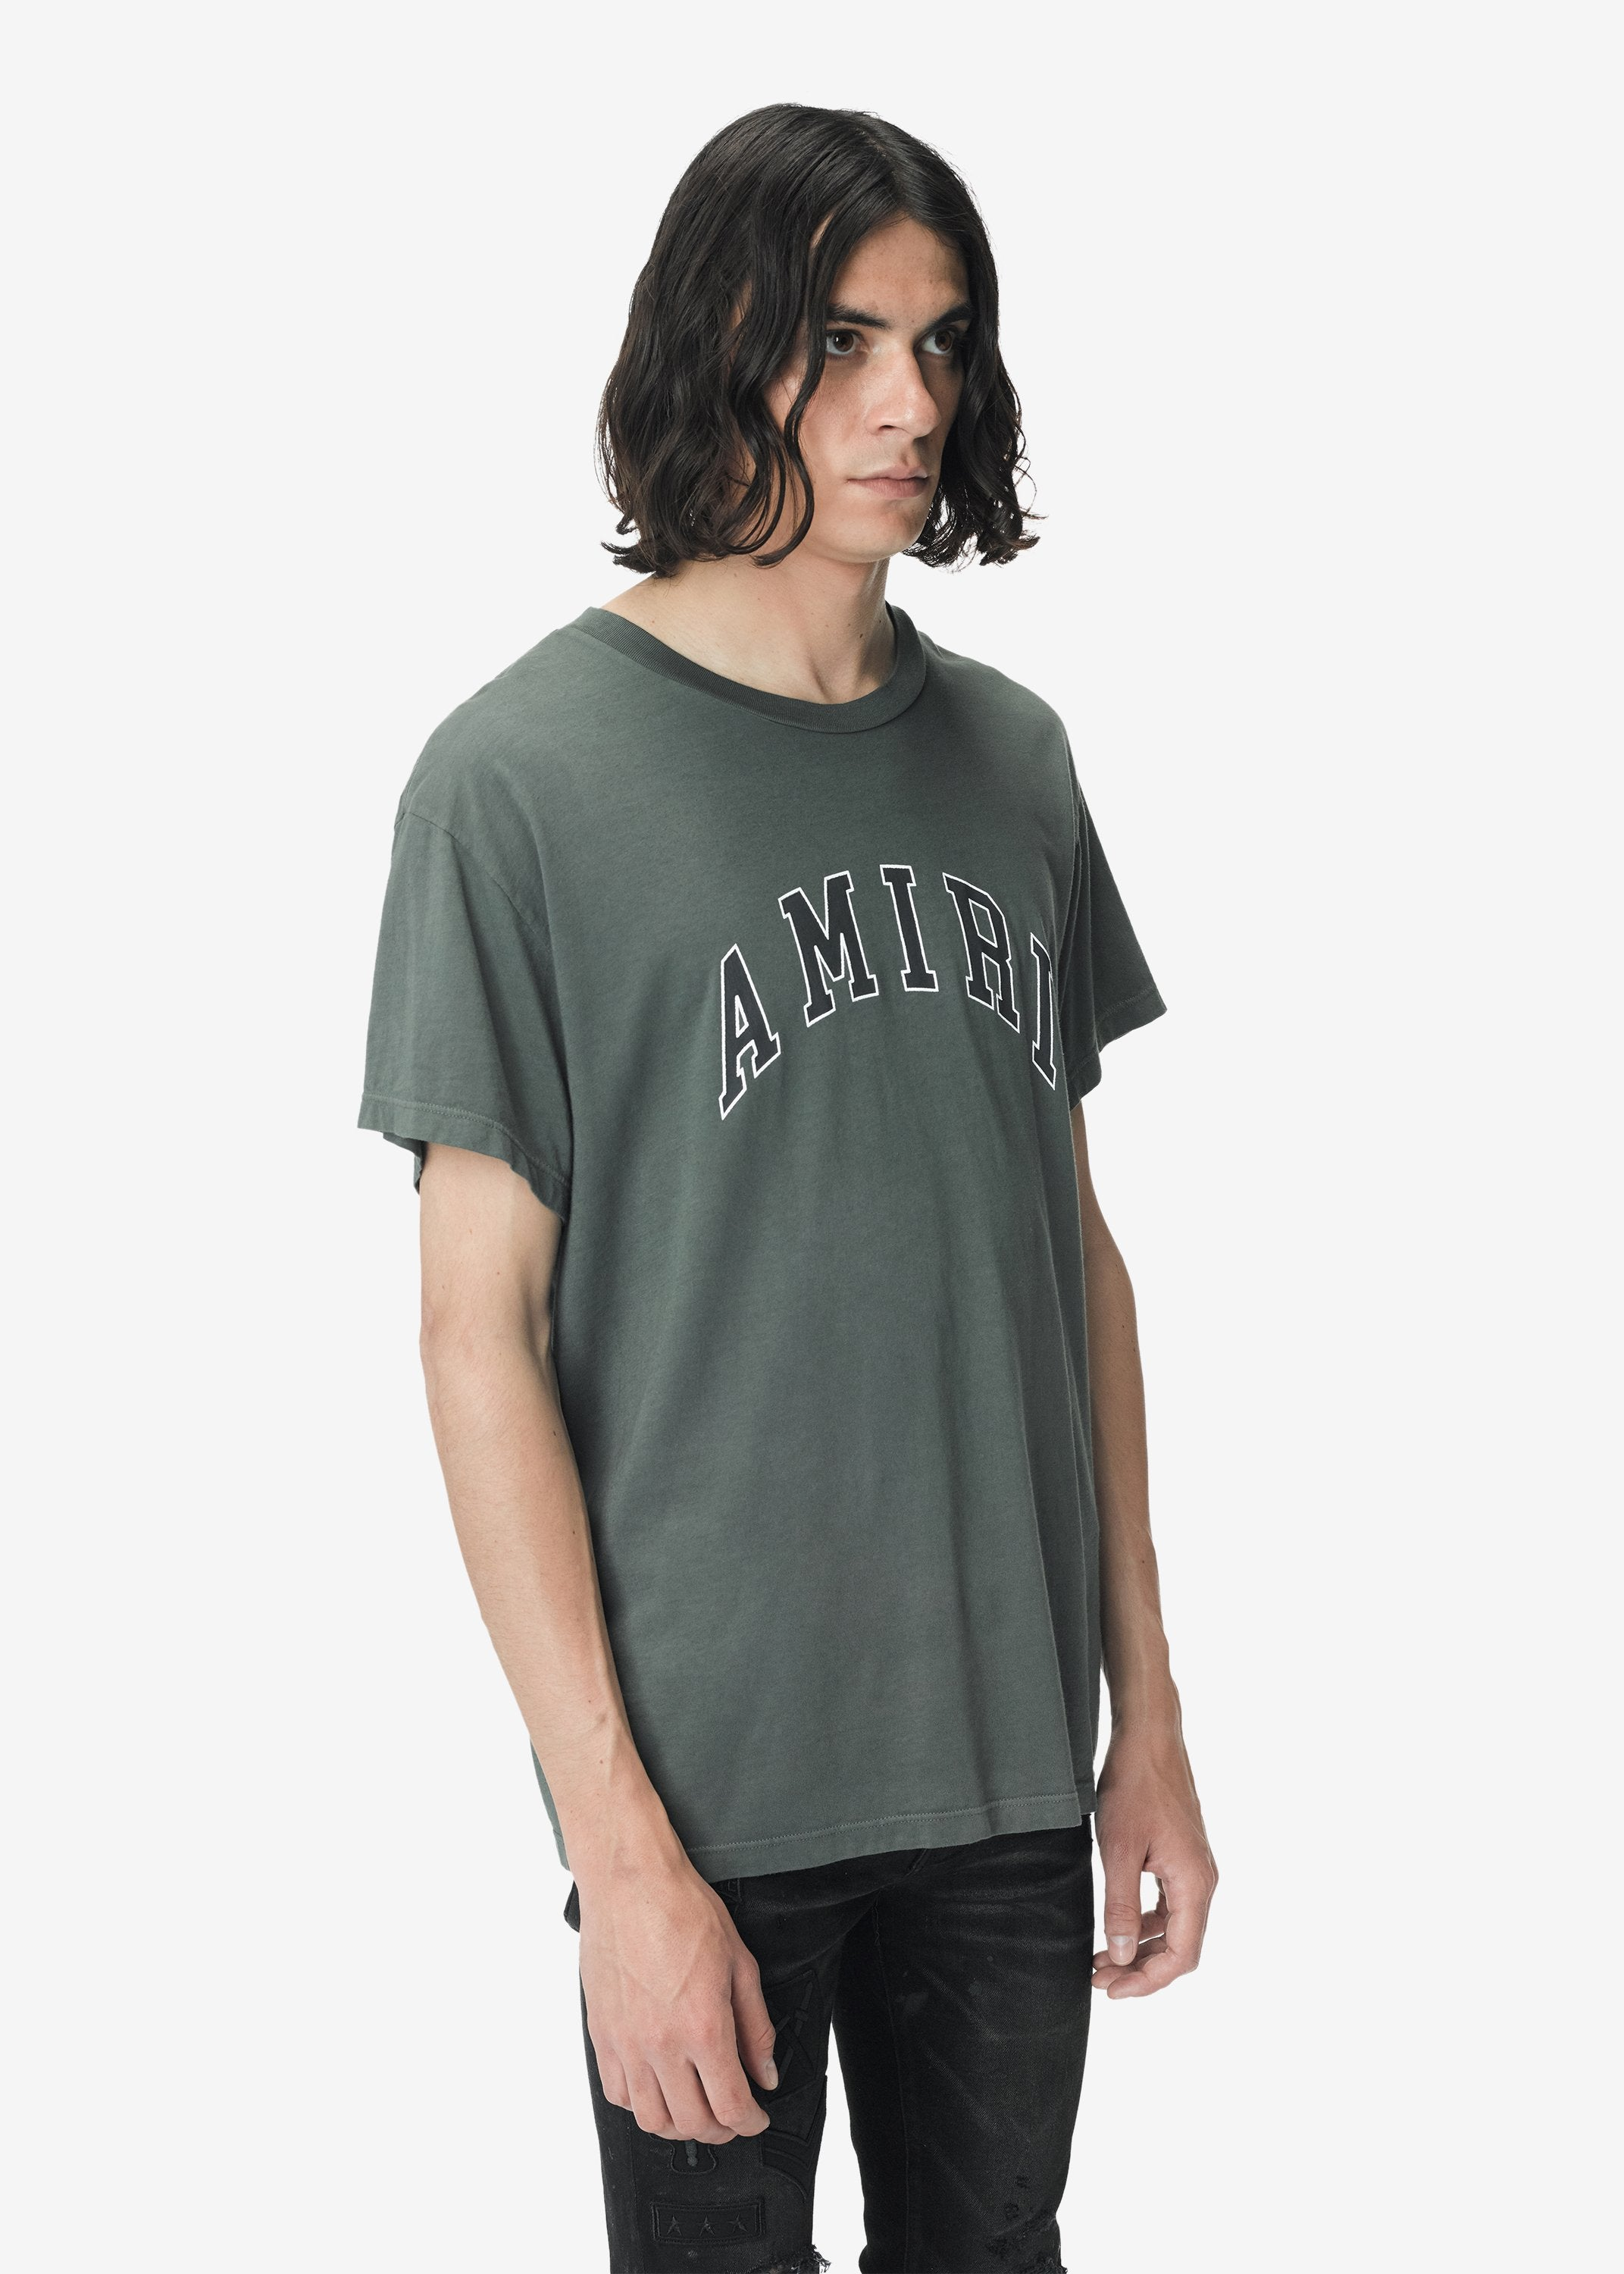 college-amiri-tee-military-green-image-3